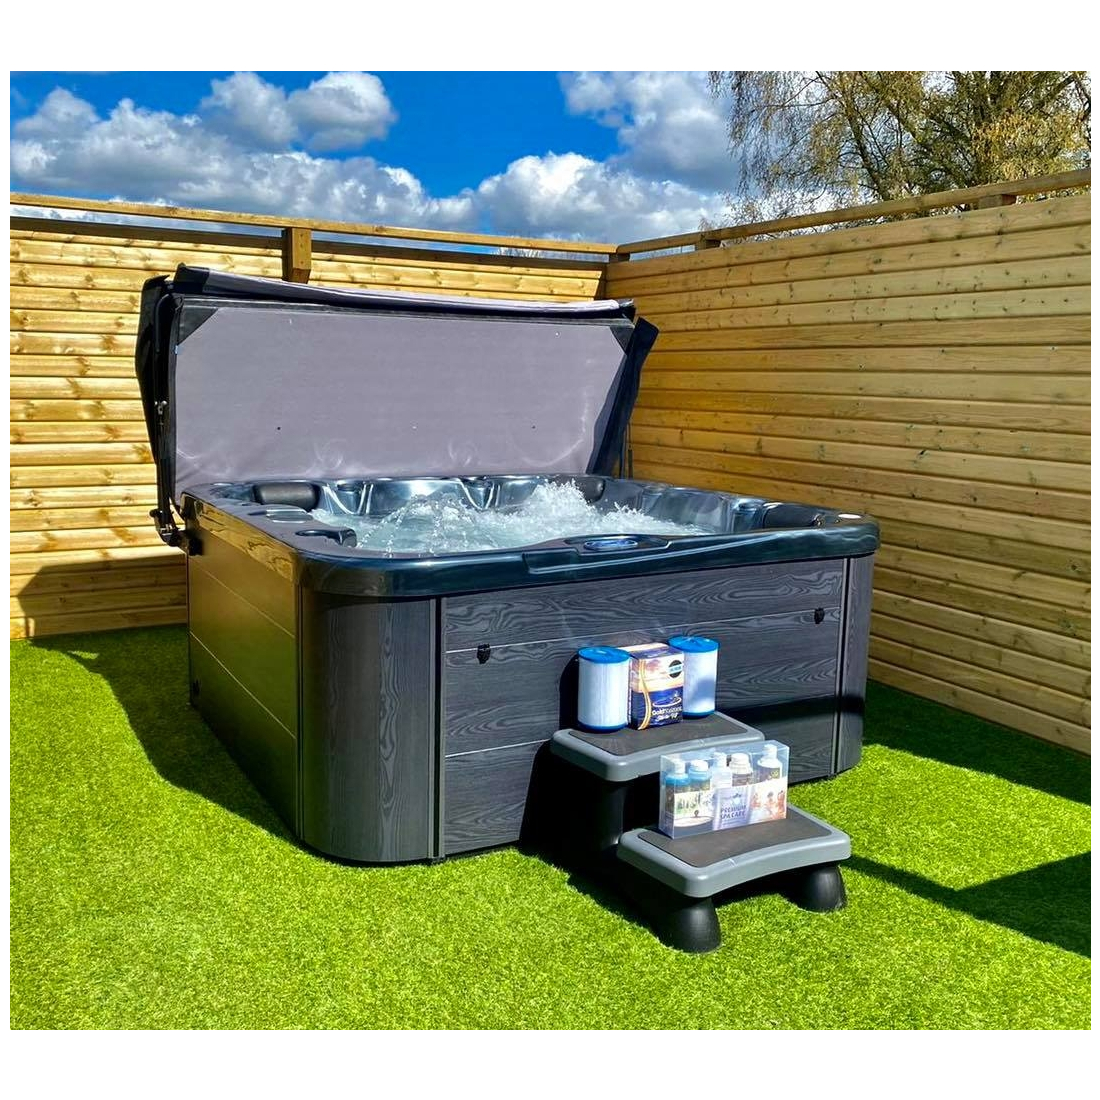 When Are Hot Tubs The Cheapest?